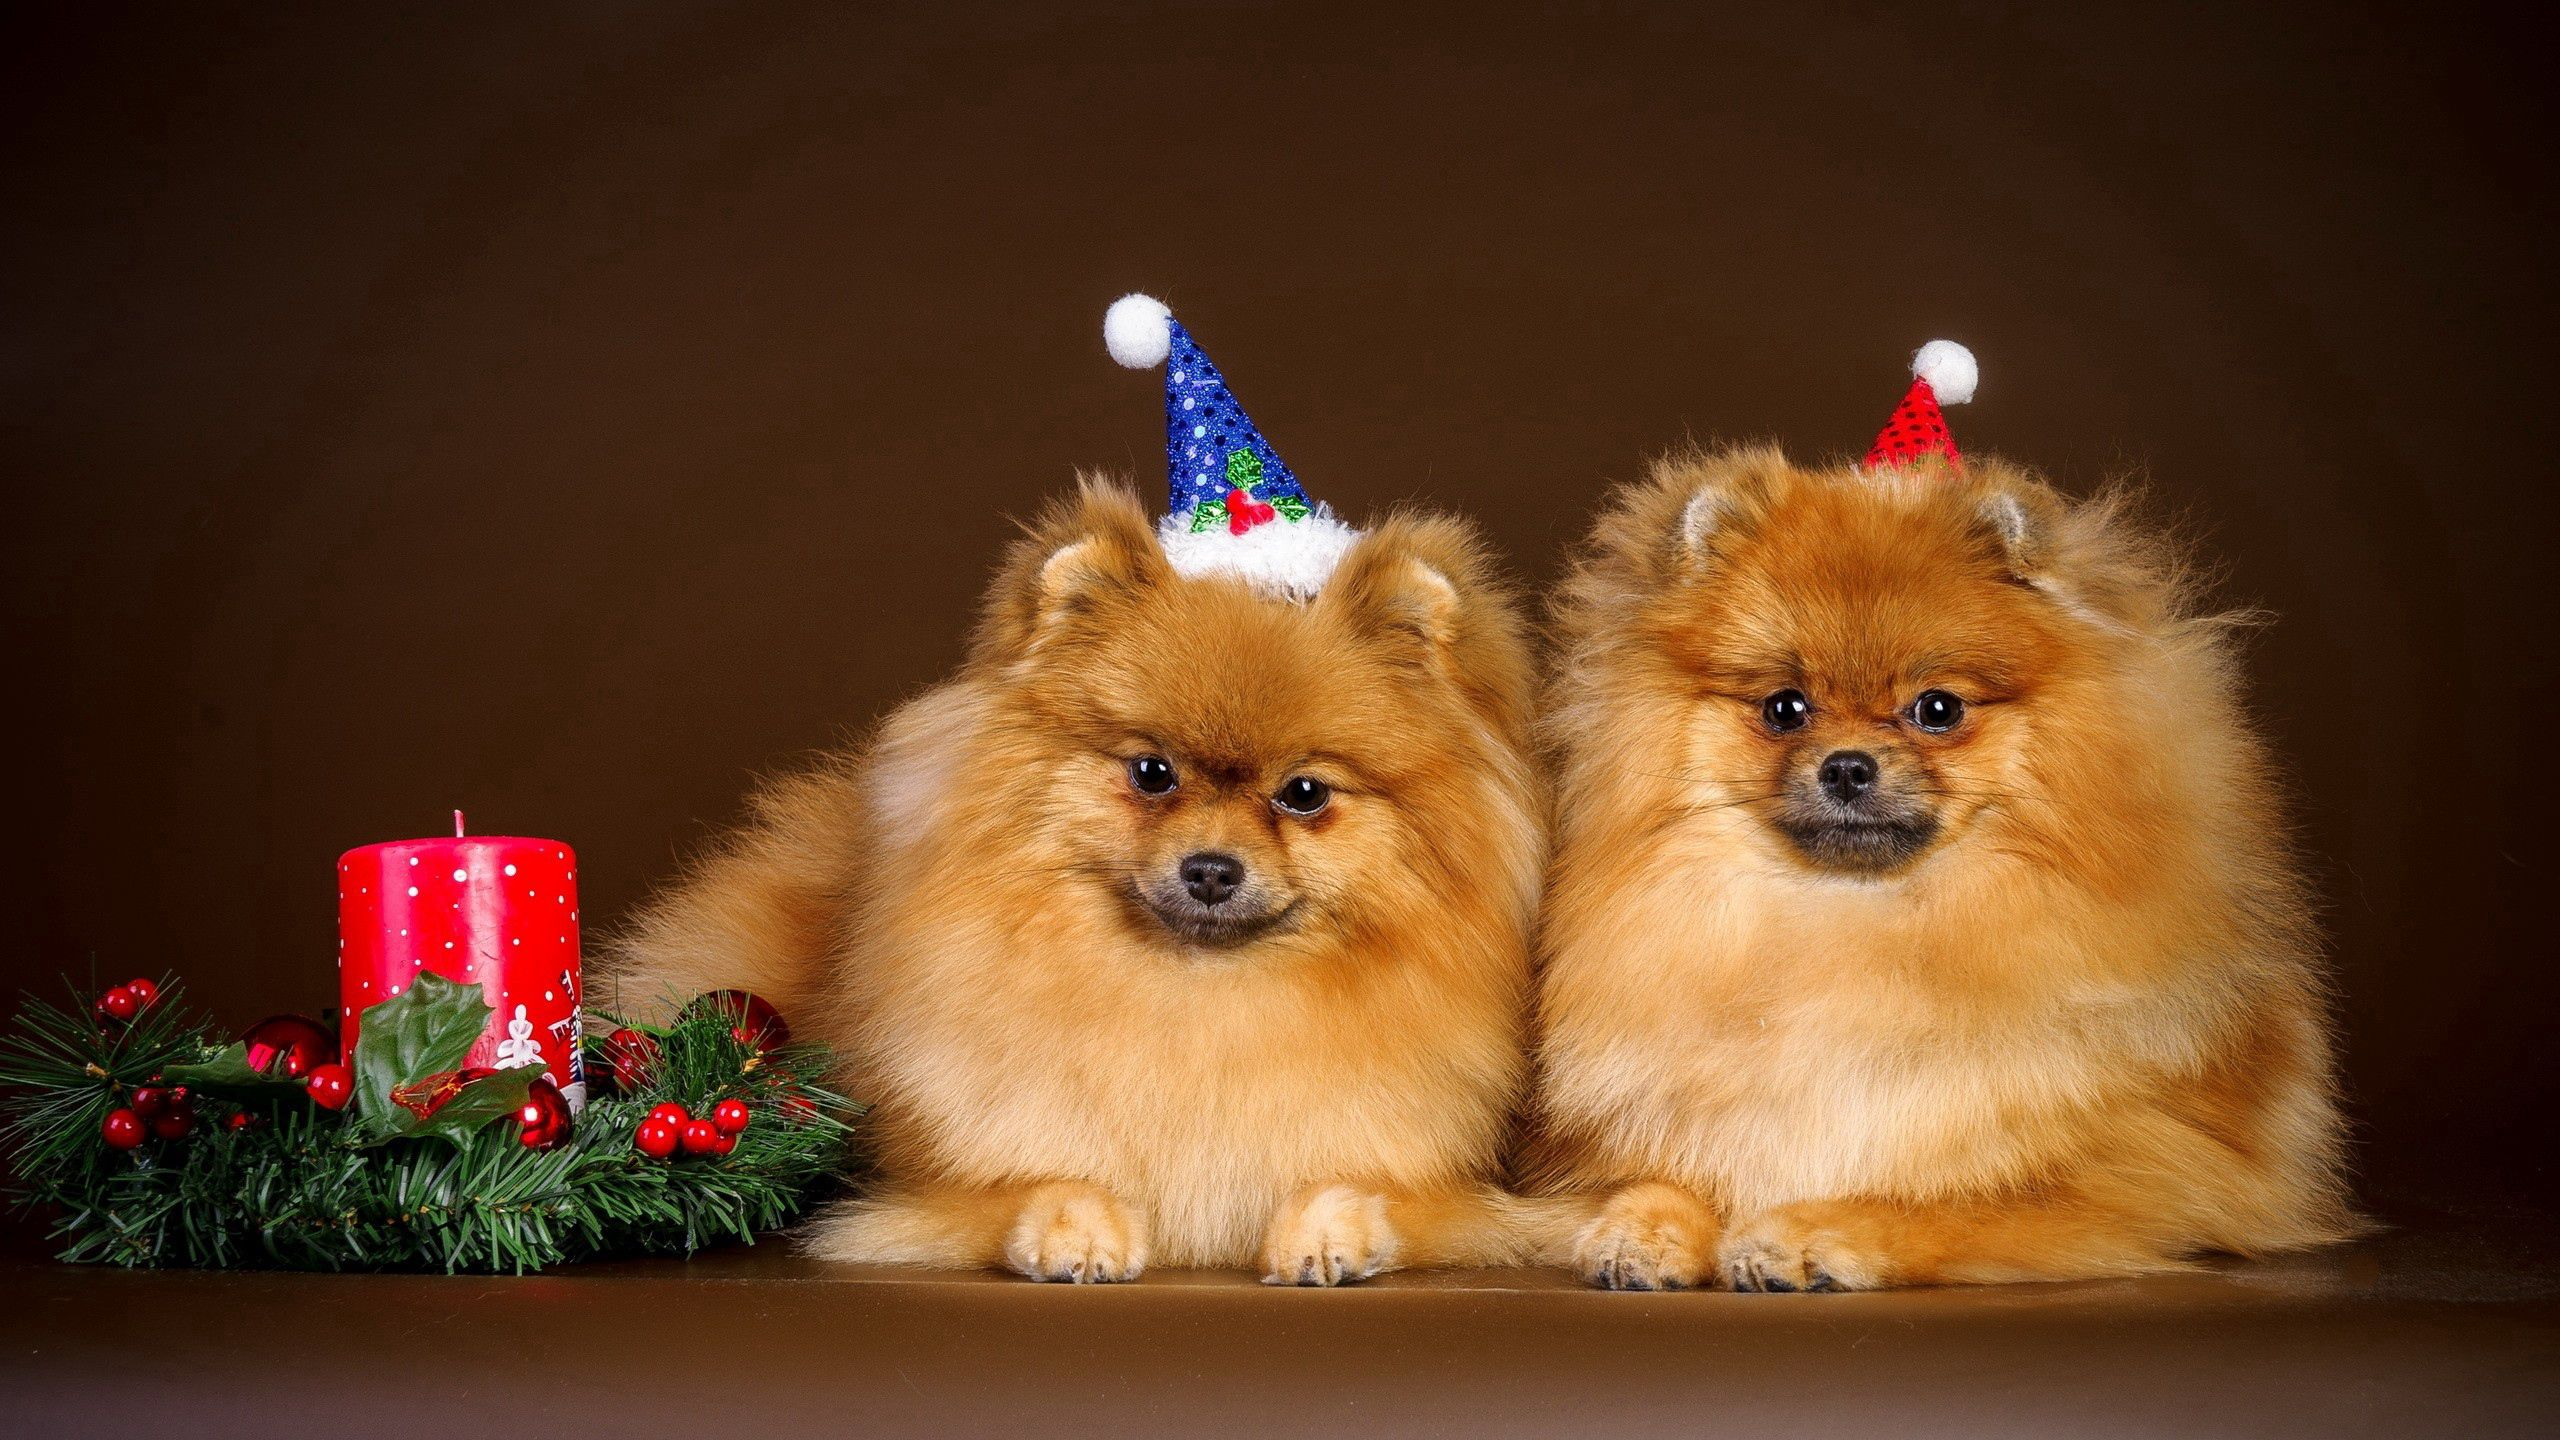 100207 download wallpaper Animals, New Year, Couple, Pair, Christmas, Puppies, Outfit, Attire screensavers and pictures for free